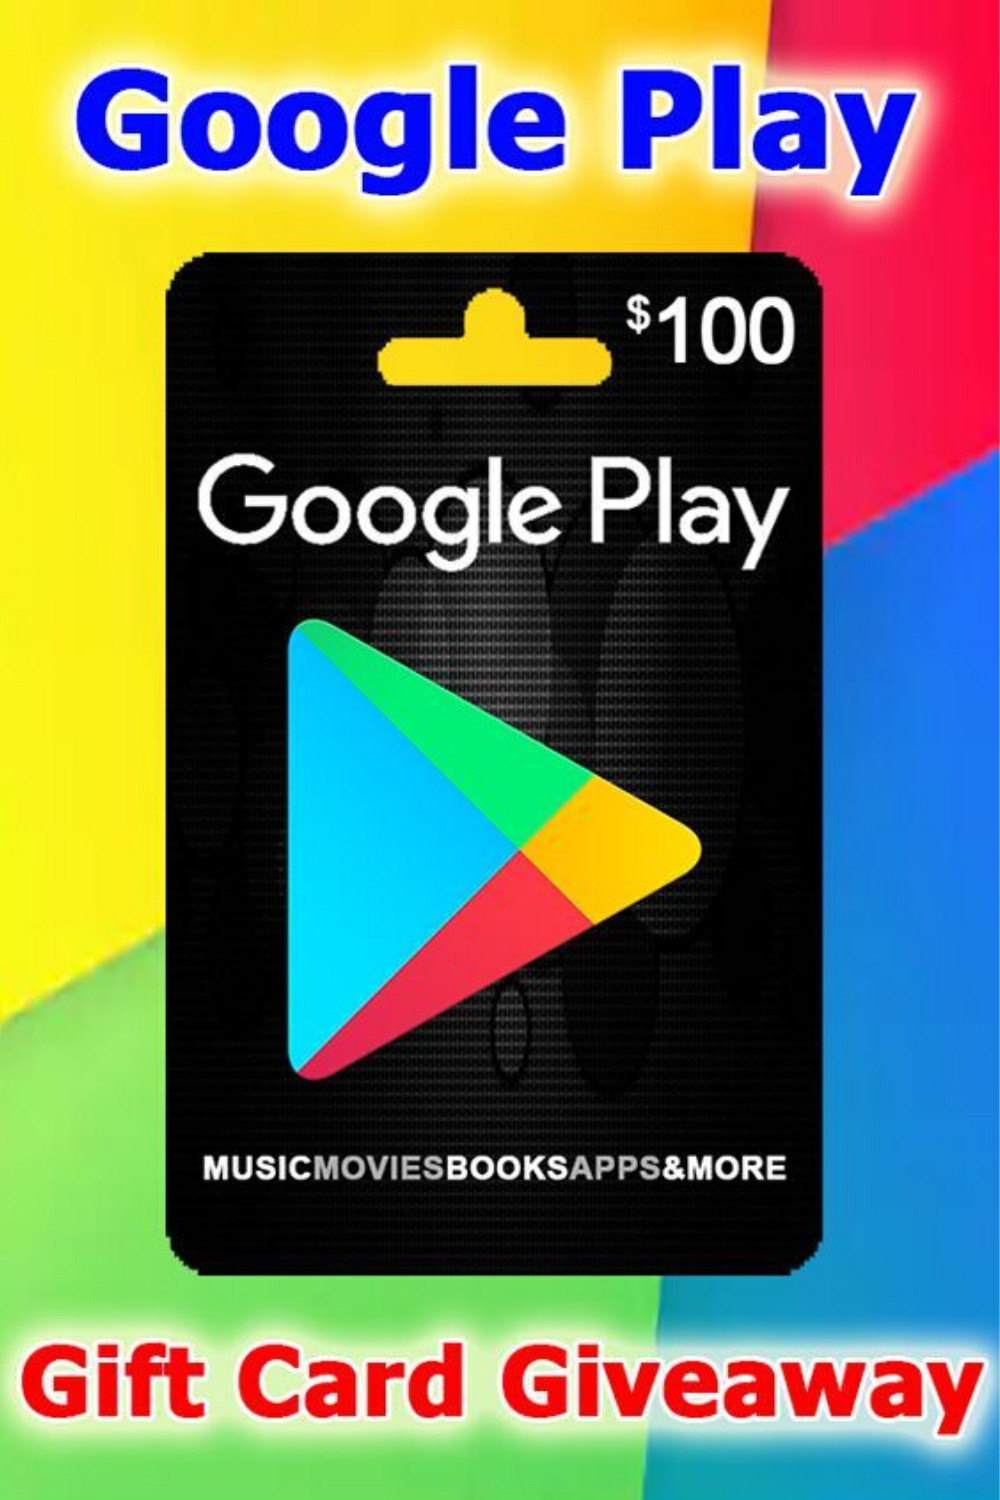 Get A 100 Google Play Gift Card Only For Usa Googleplay Google Google Play Gift Card Google Play Codes Itunes Gift Cards